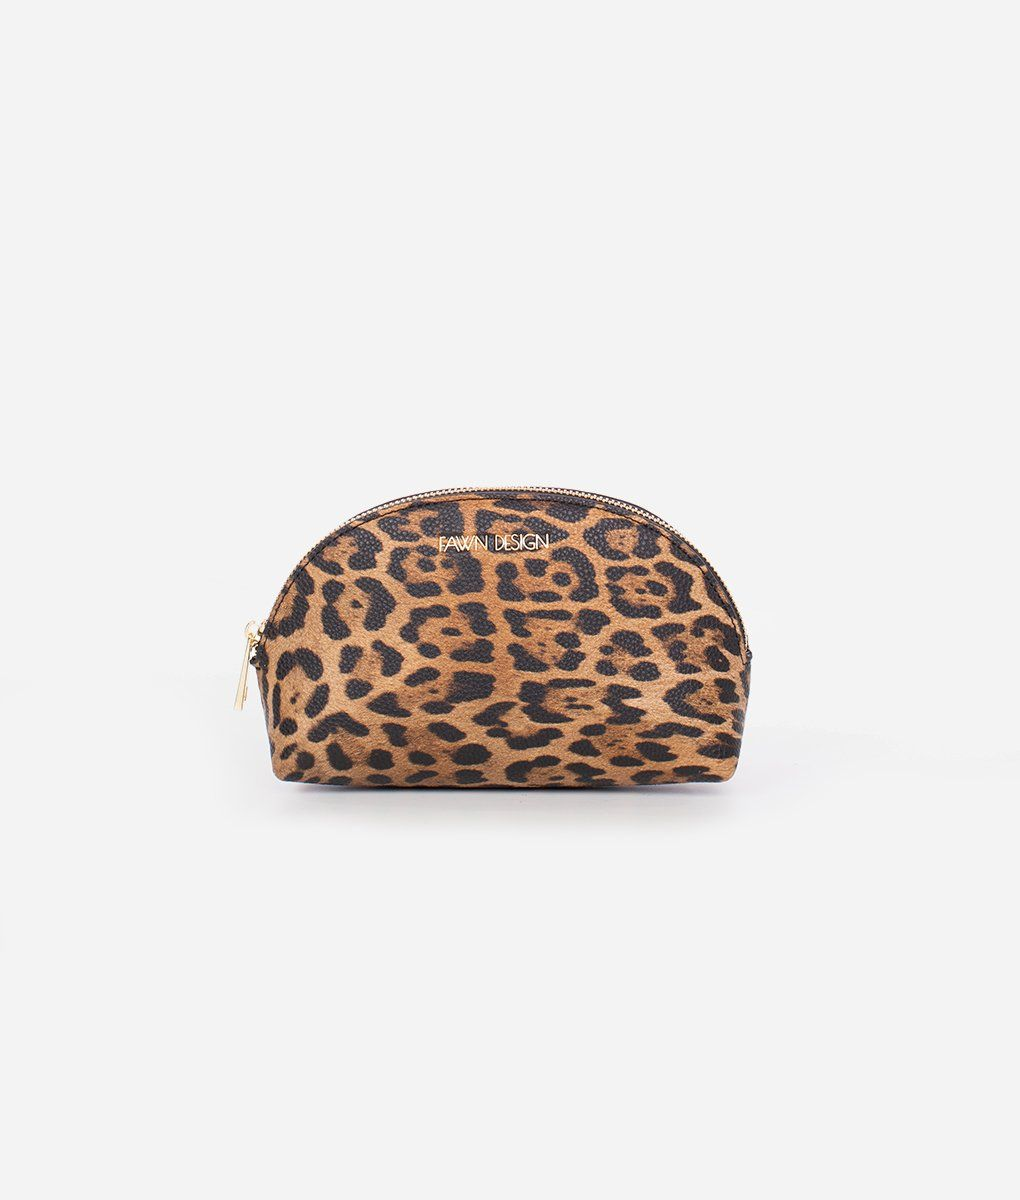 The Cosmetic Bag  Leopard (Small) - Cosmetic bag, Small cosmetic bags, Bags, Cosmetics, Cosmetic items, Small accessories - The new Fawn Design Small Cosmetic Bag in Leopard is the cat's meow! Store your makeup essentials in this sleek zippered bag  The Small Cosmetic Bag can fit most makeup and cosmetic items, plus an eyelash curler, tweezers, Qtips, or cotton pads  The bag can also be used to store jewelry or small accessories and electronic items, such as earbuds and charging cords, when you travel   Made of premium pebbled vegan leather  Gold ziptop opening  Easytoclean nylon lining    DIMENSIONS  Size 8 x 6 x 3 Weight approximately 7oz